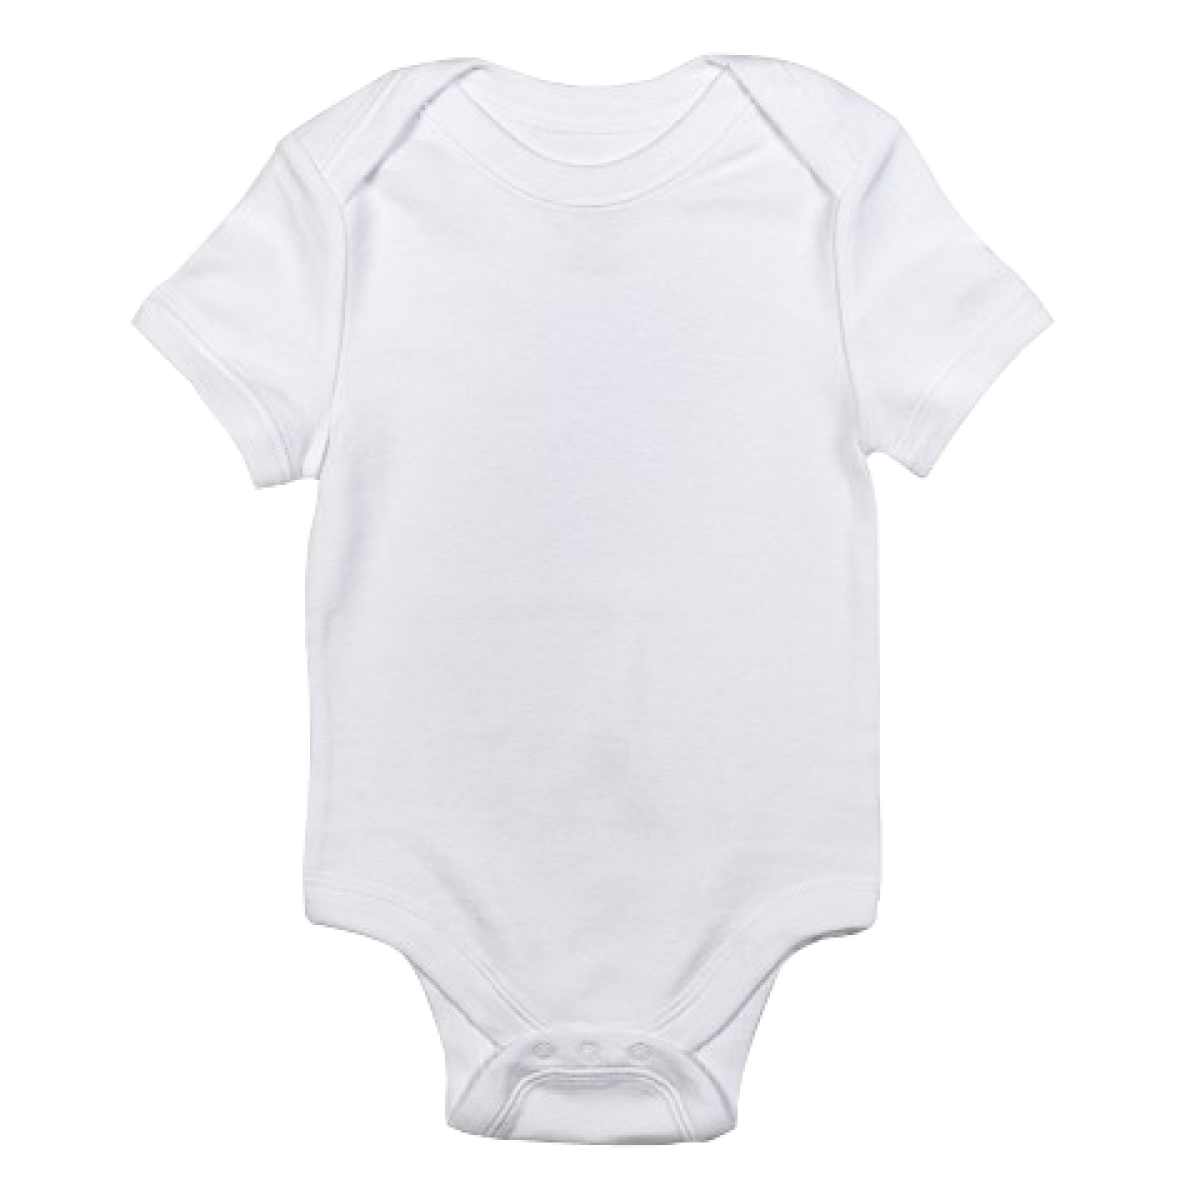 Baby Onesie White Trans   Free Images At Clker Com   Vector Clip Art